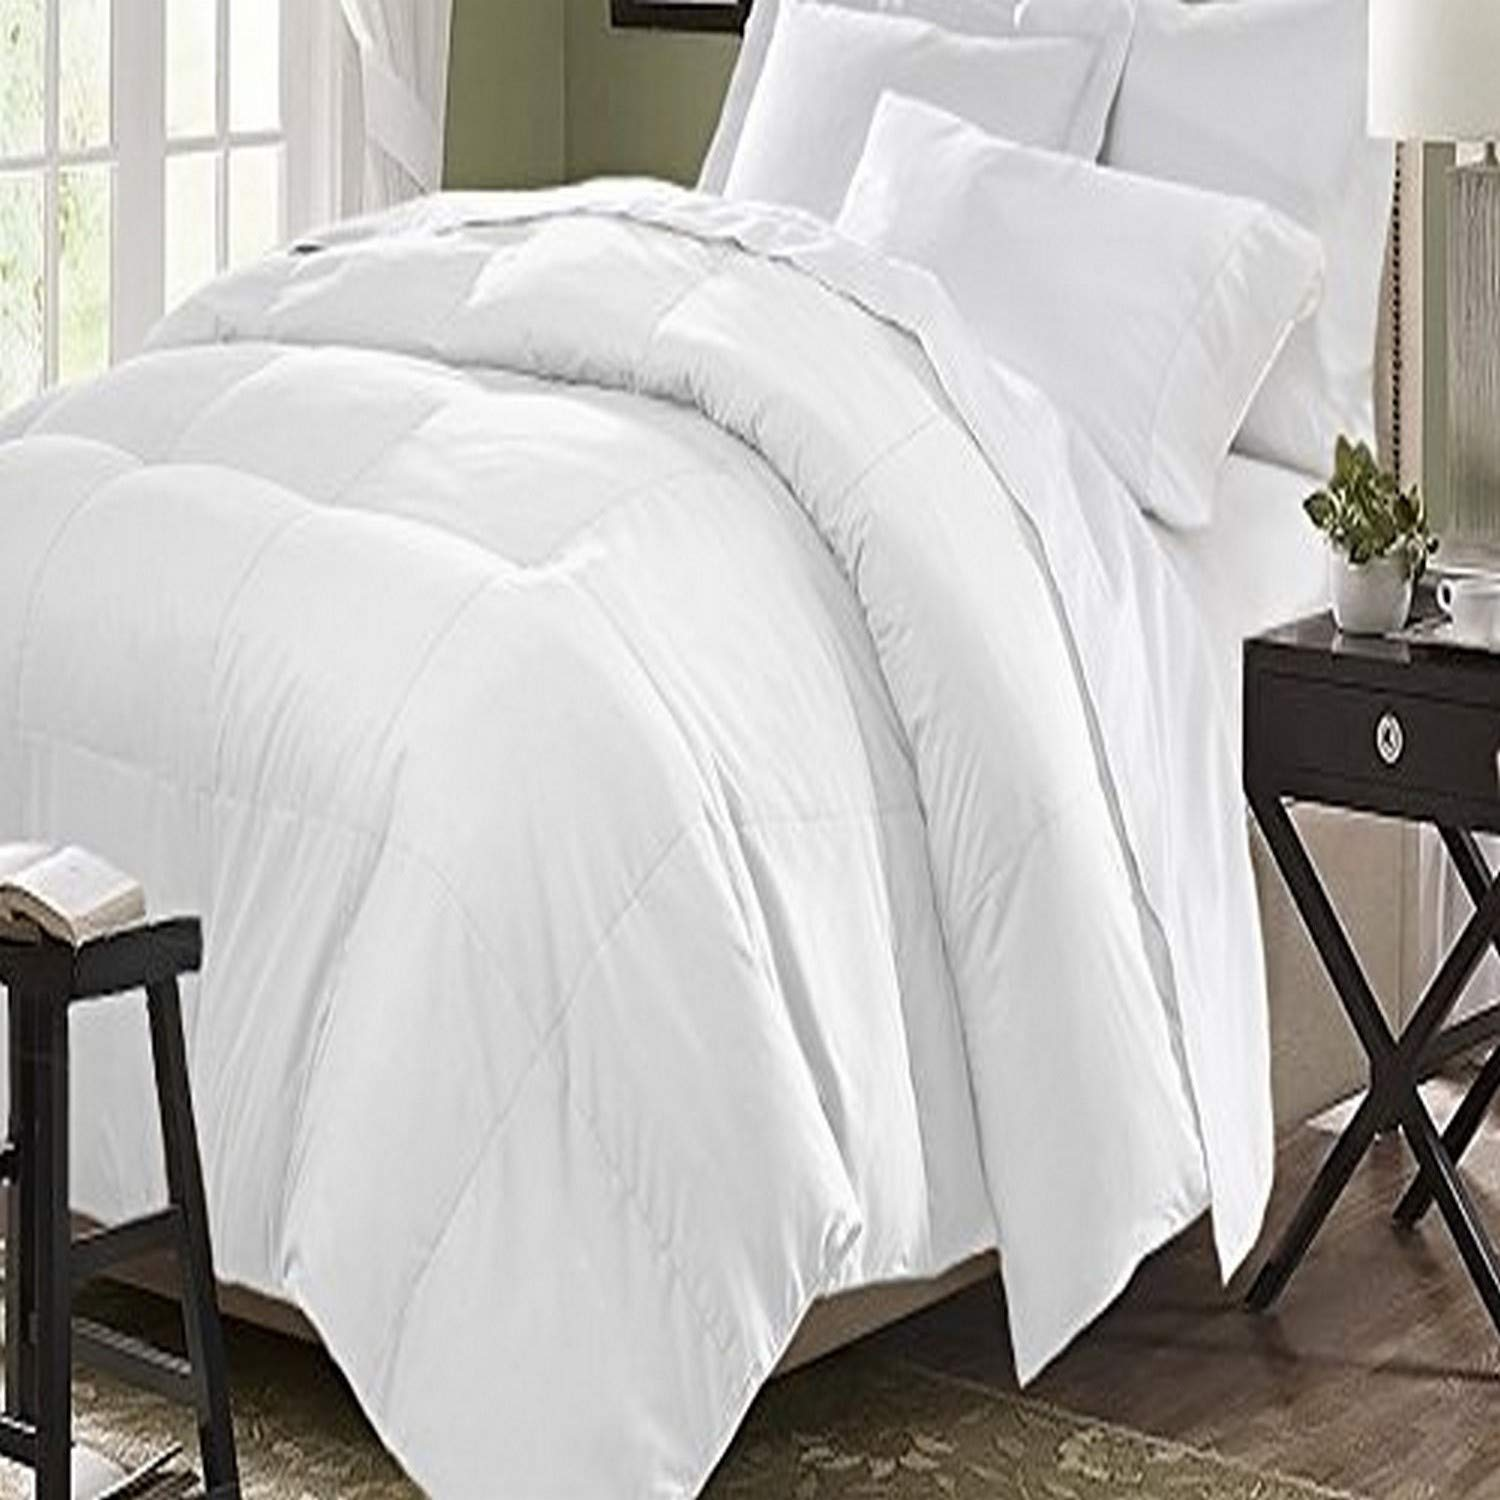 Kathy Ireland Microfiber Down Fiber King in White Color Comforter